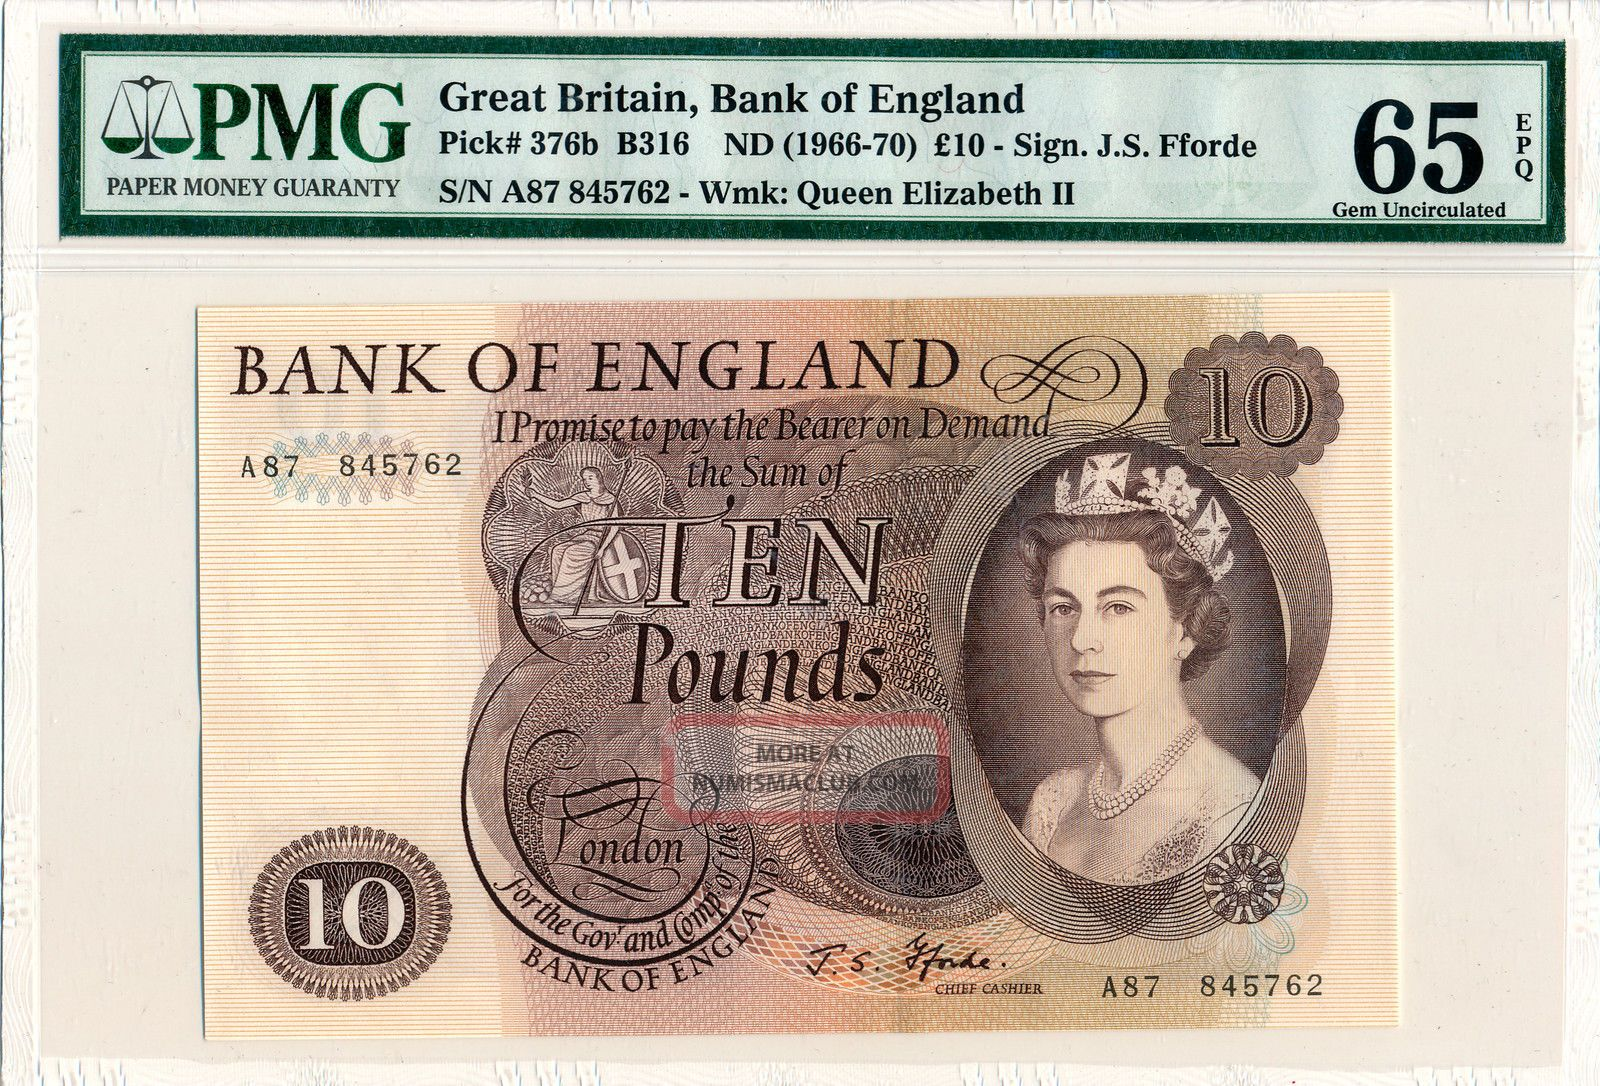 Bank Of England Great Britain 10 Pounds Nd (1966 - 70) Pmg 65epq Europe photo